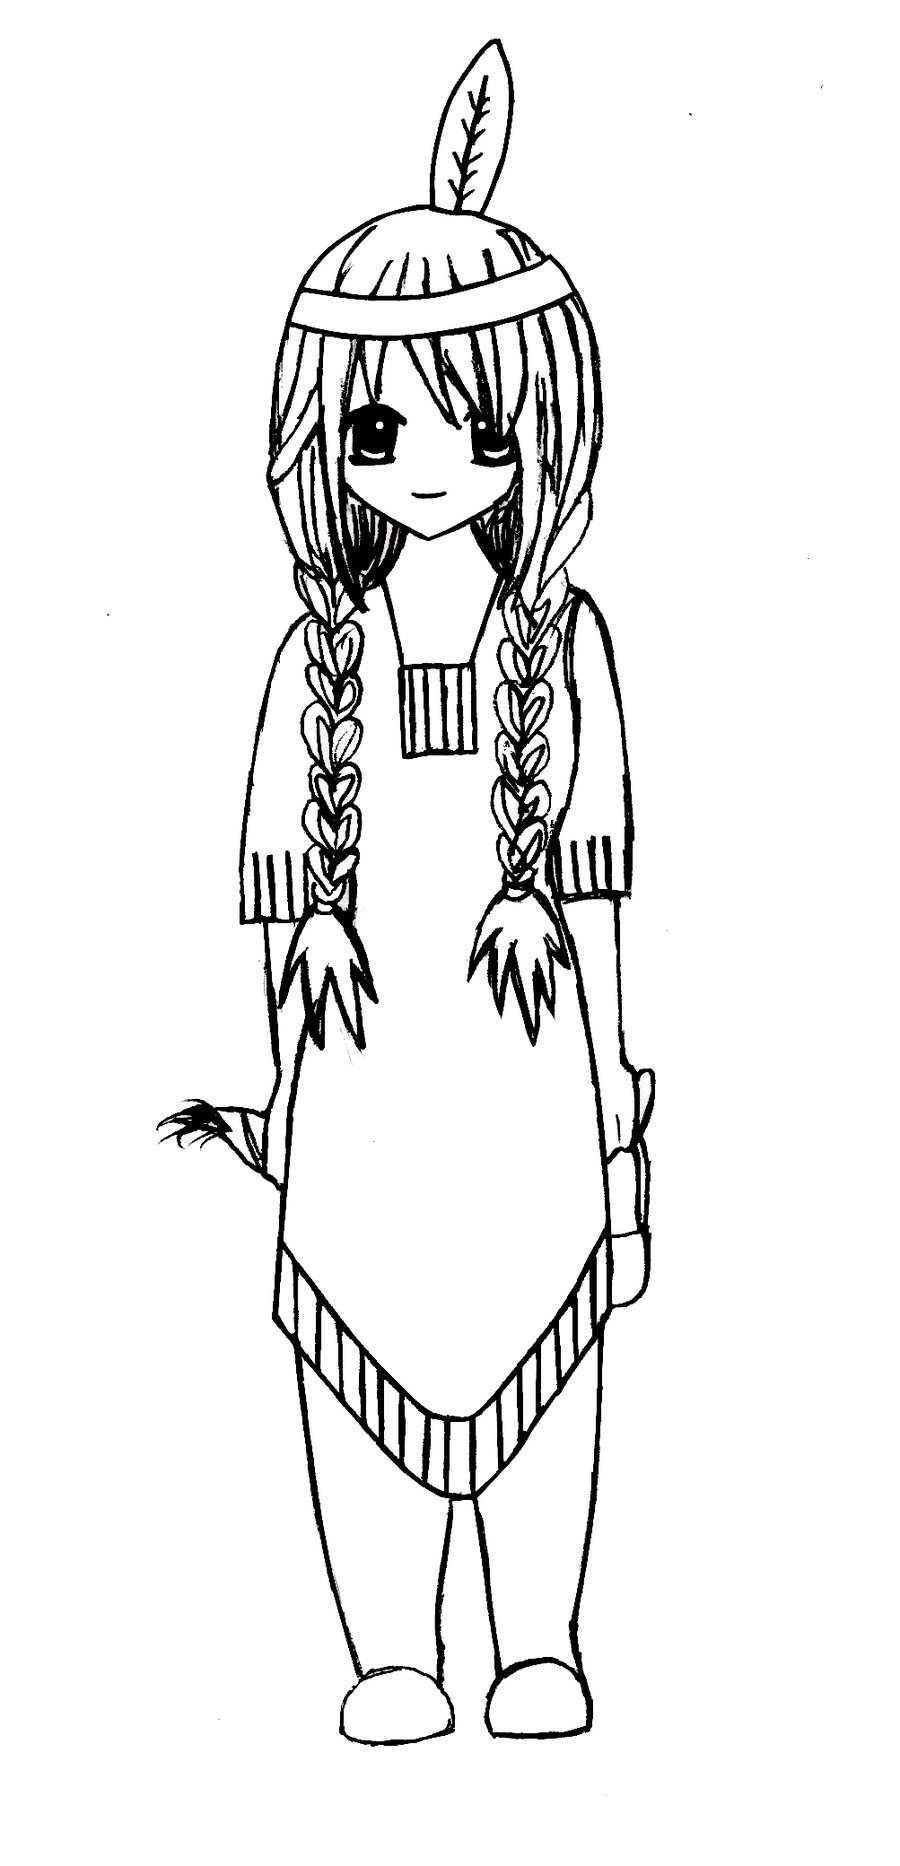 900x1866 Native American Girl Coloring Page Collection Free Coloring Sheets